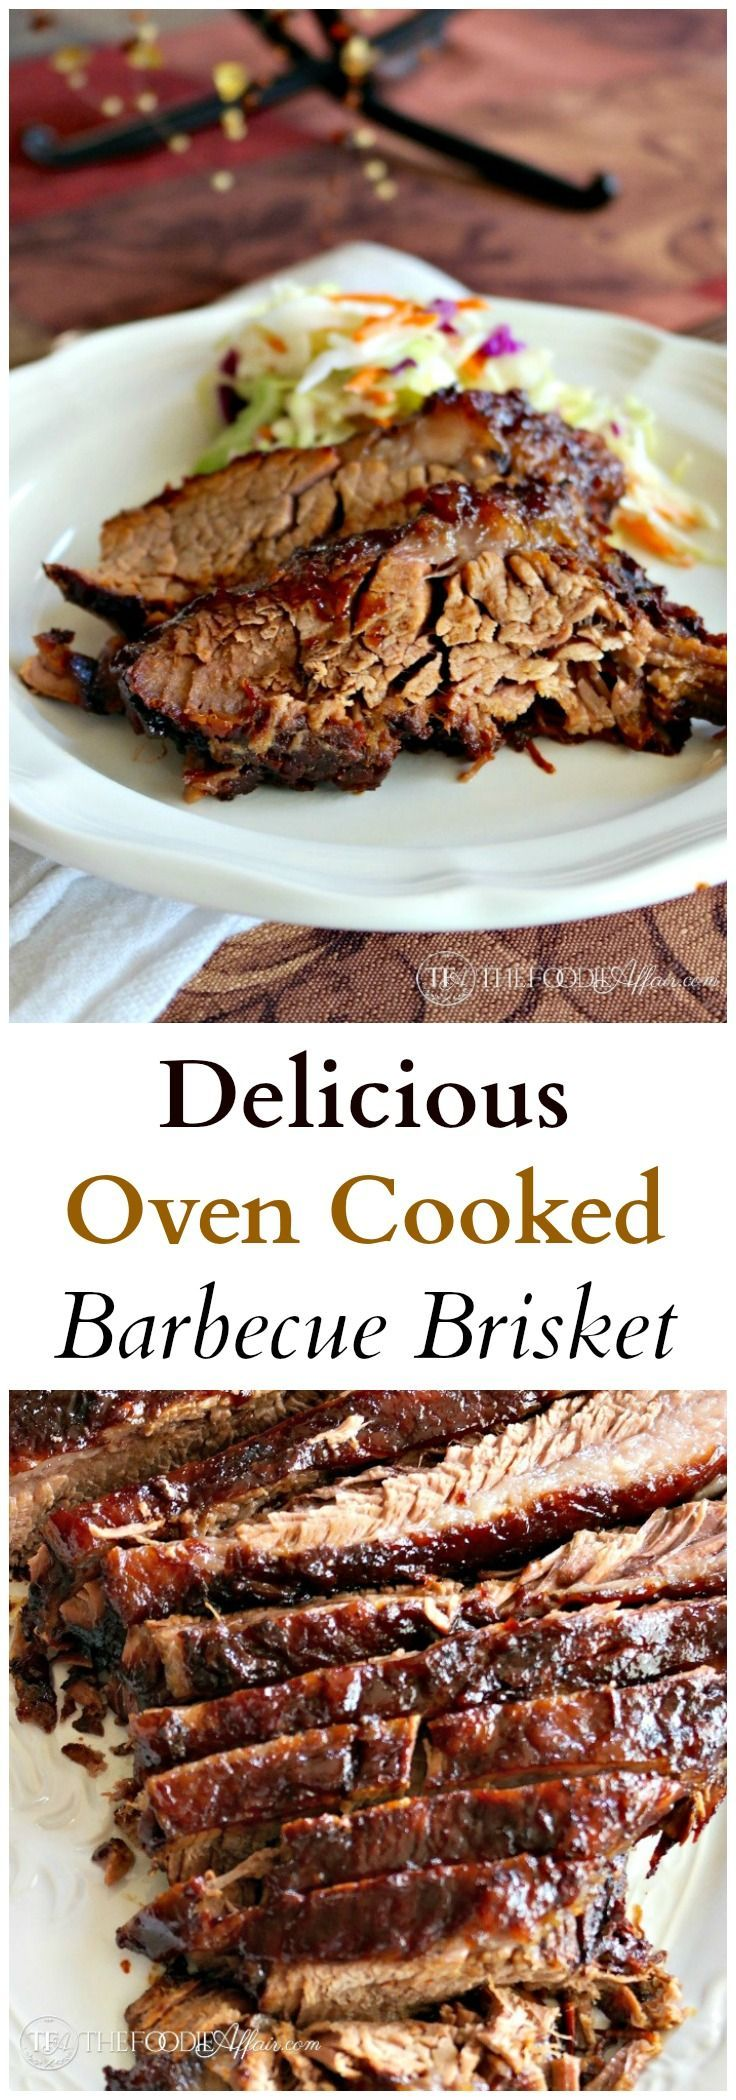 Delicious Oven Cooked Barbecue Brisket ~ Marinated overnight in liquid smoke and then slow cooked to perfection... Tender and delicious!